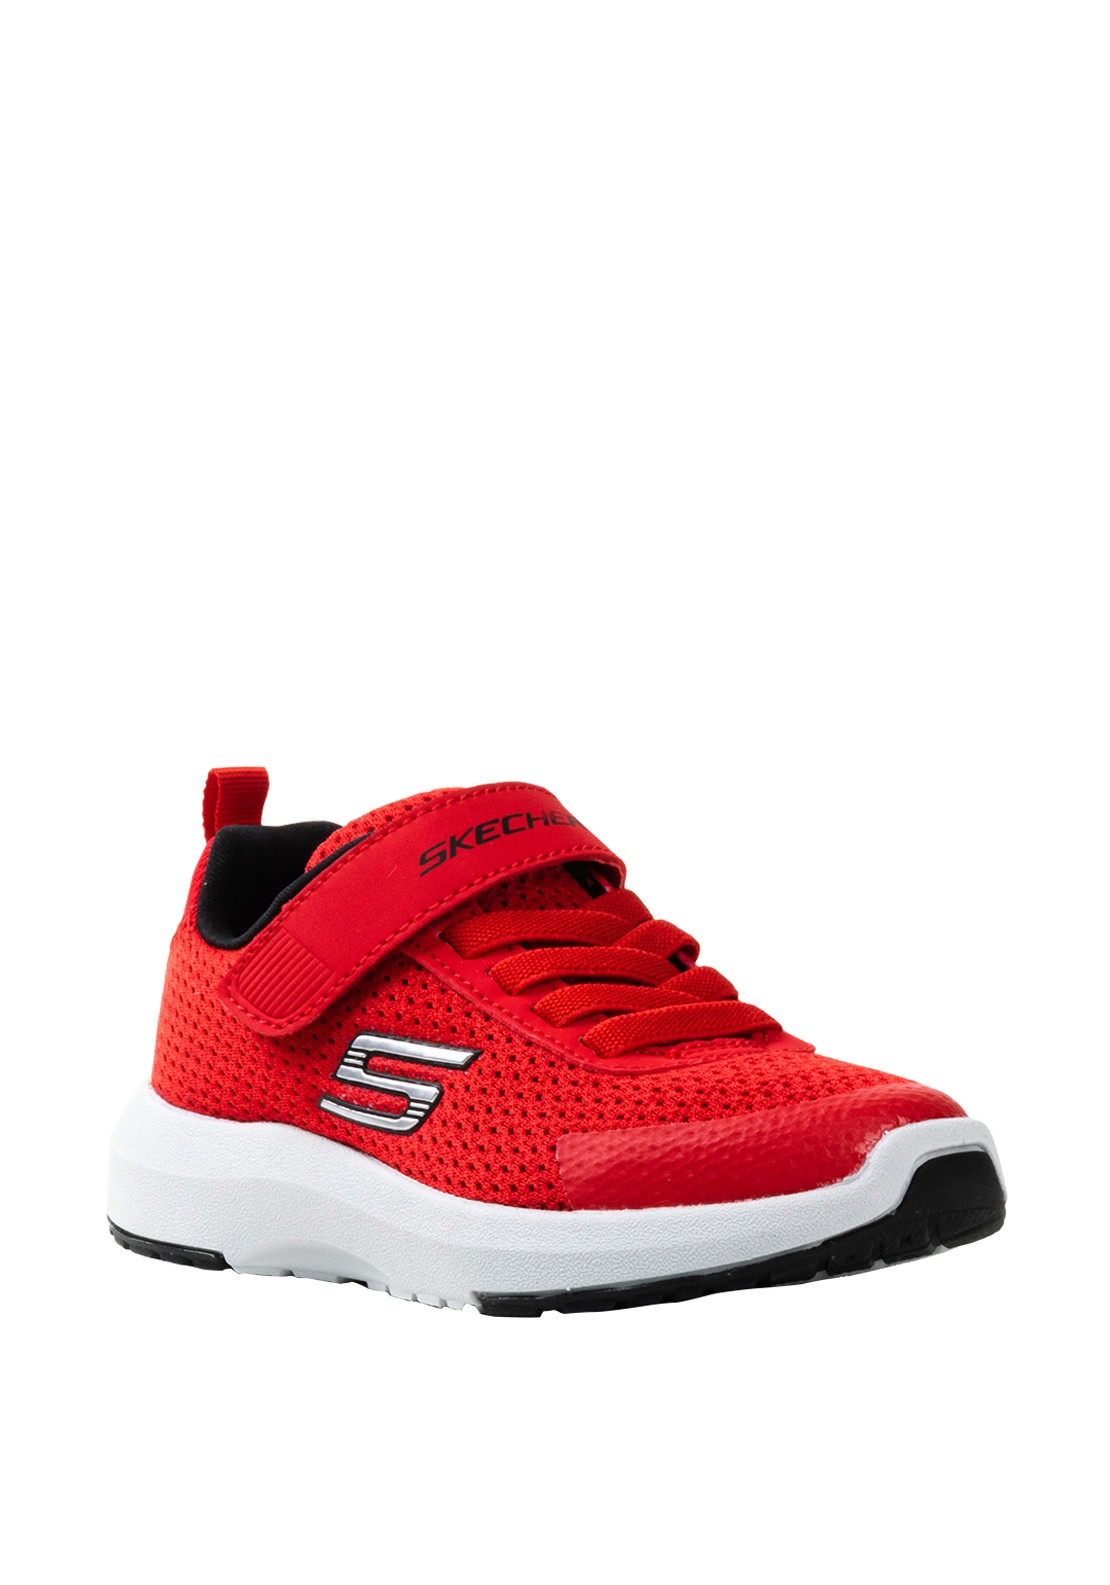 check out 92ddd 5c192 Skechers Boys Knit Velcro Strap Trainers, Red